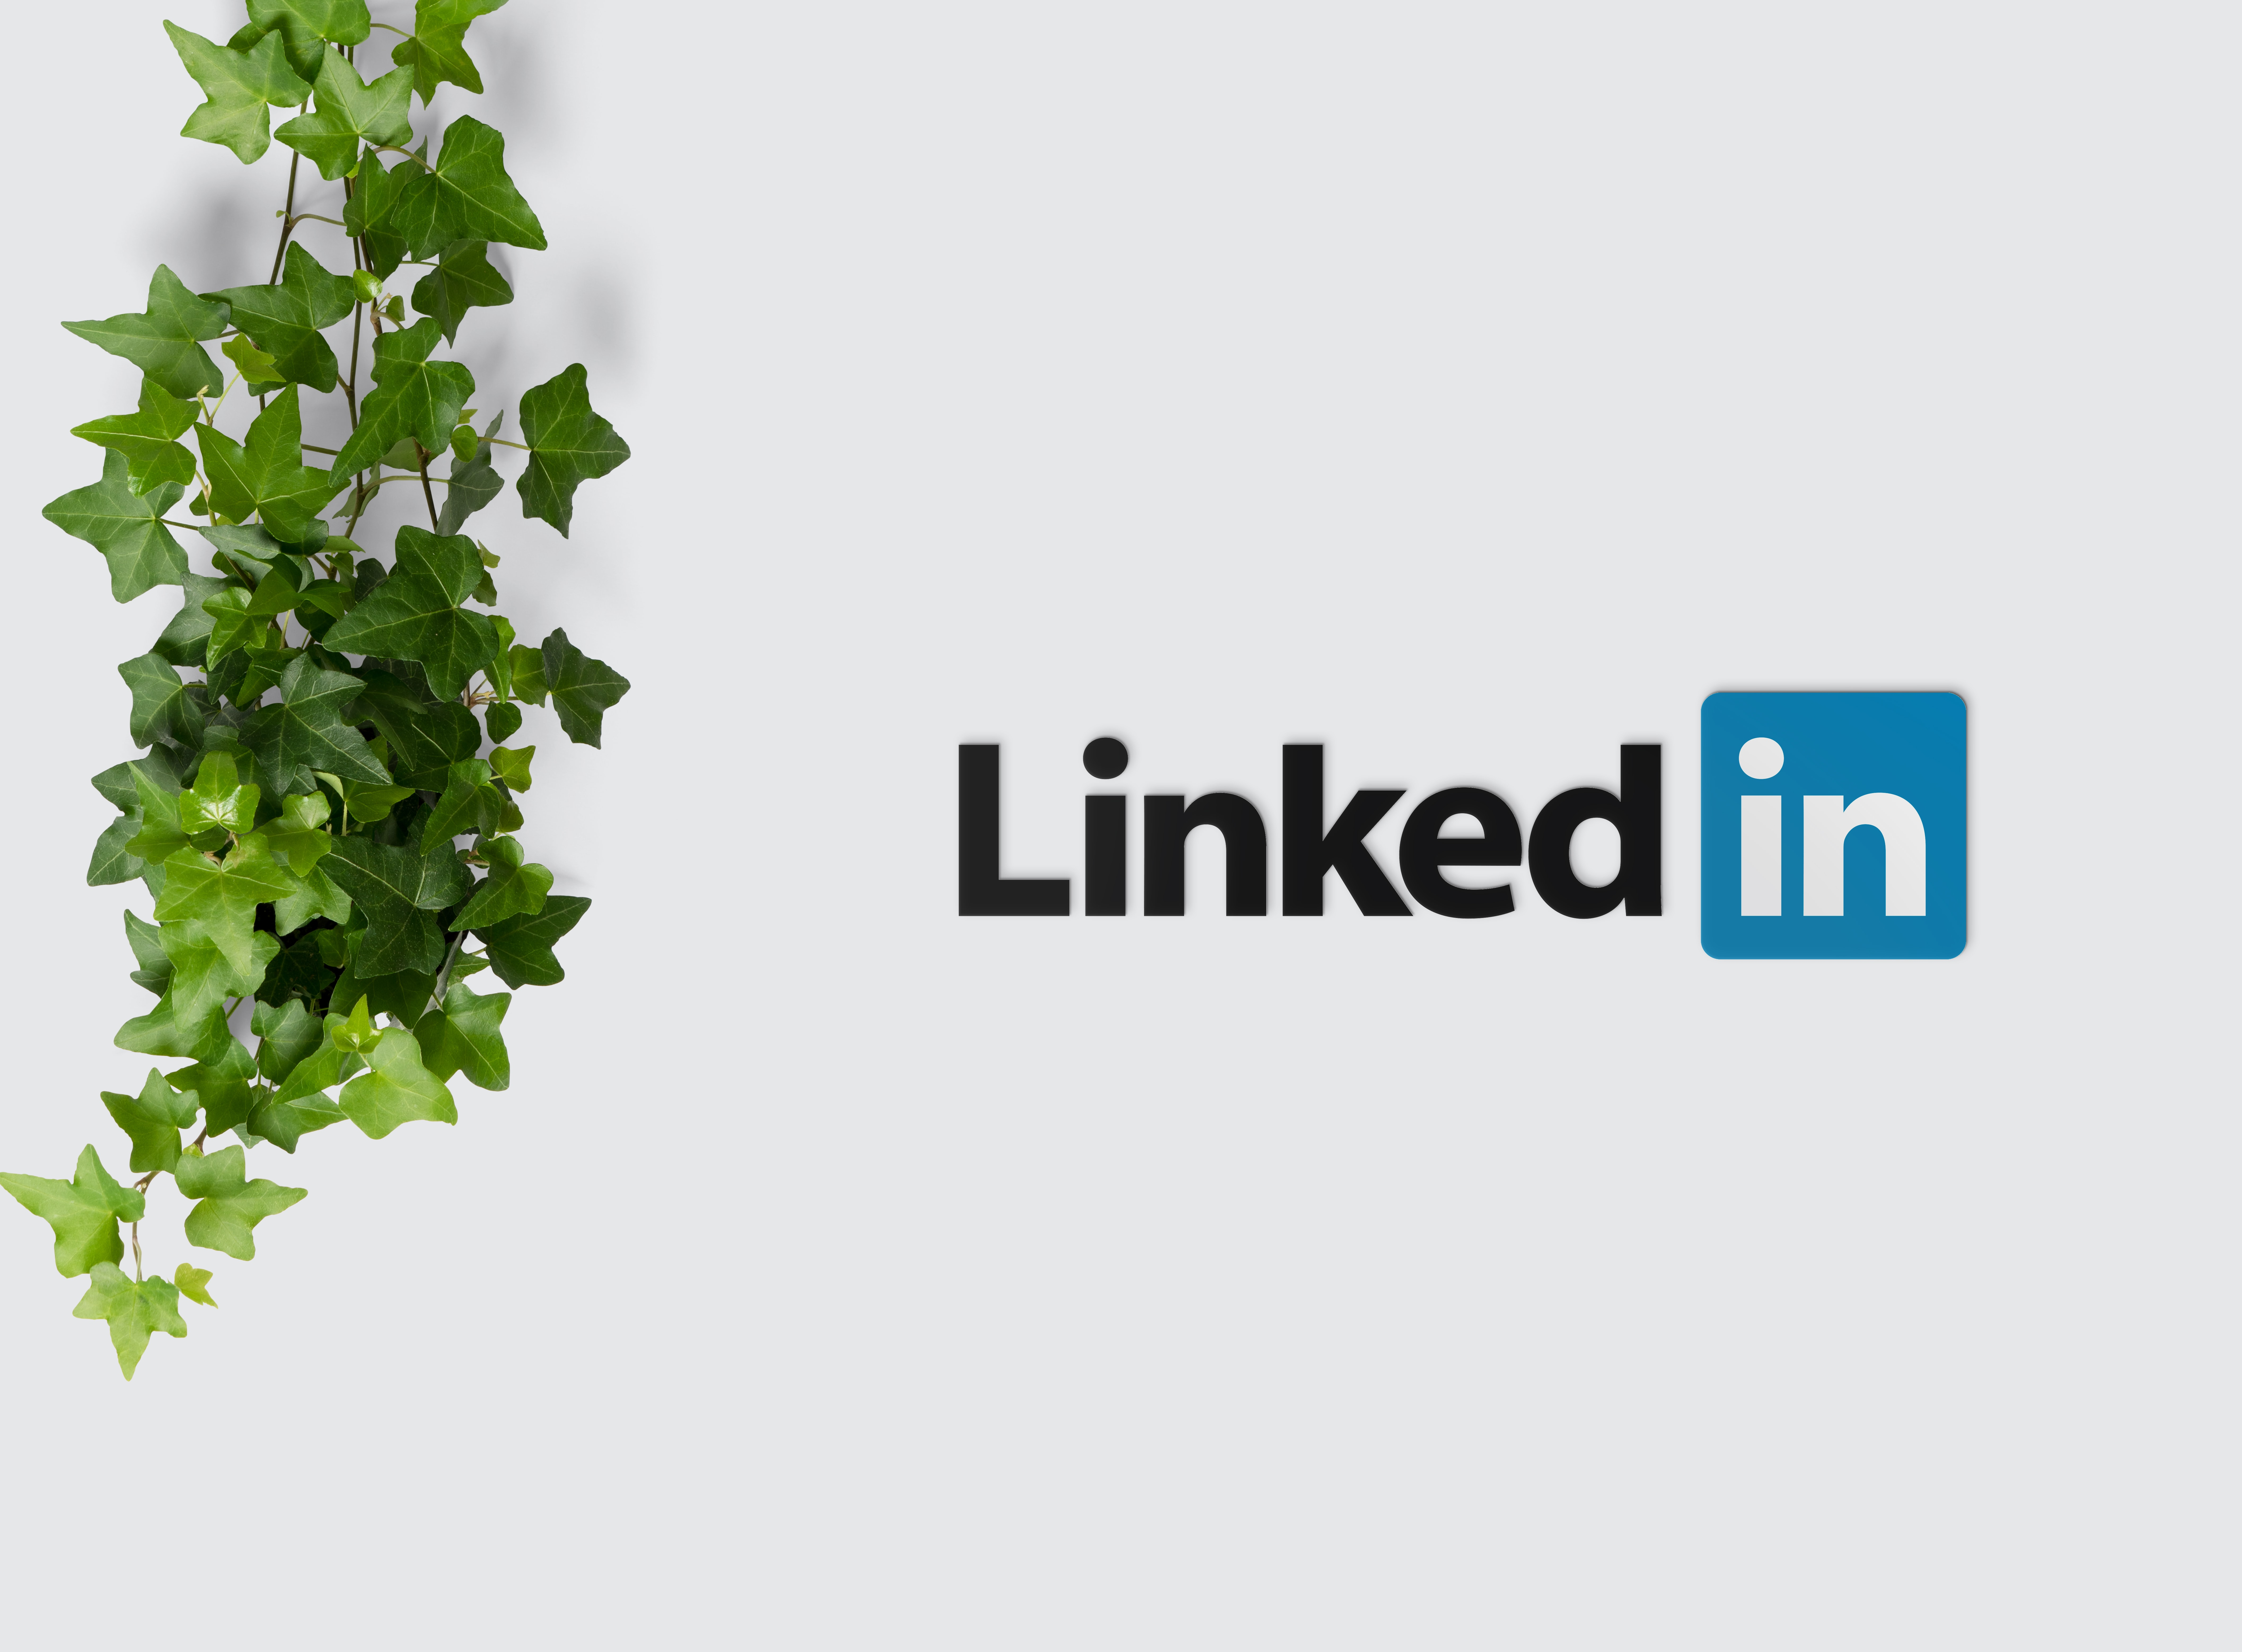 LinkedIn Breach, Does This Affect You?